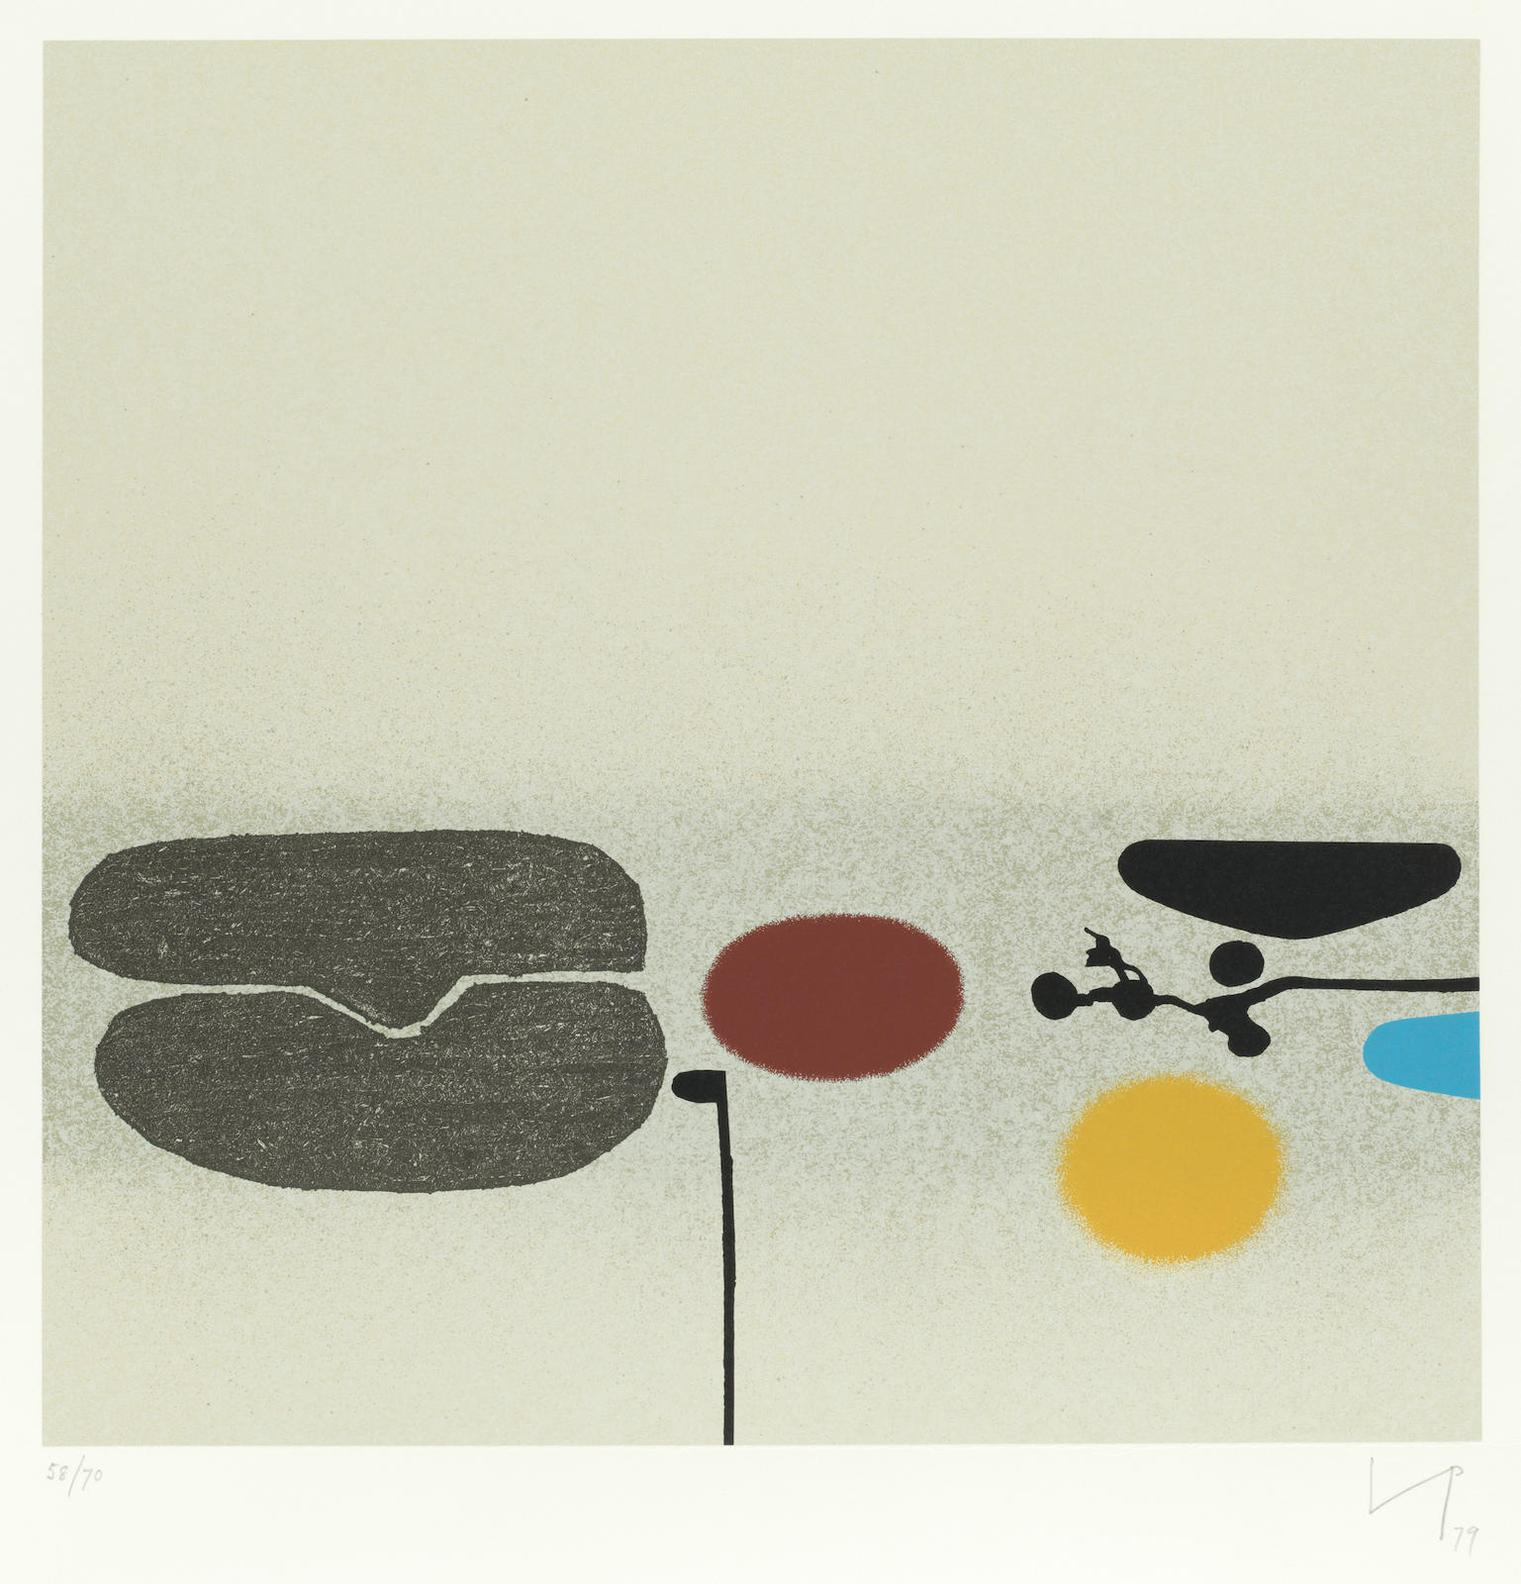 Victor Pasmore-Points Of Contact No. 29-1979